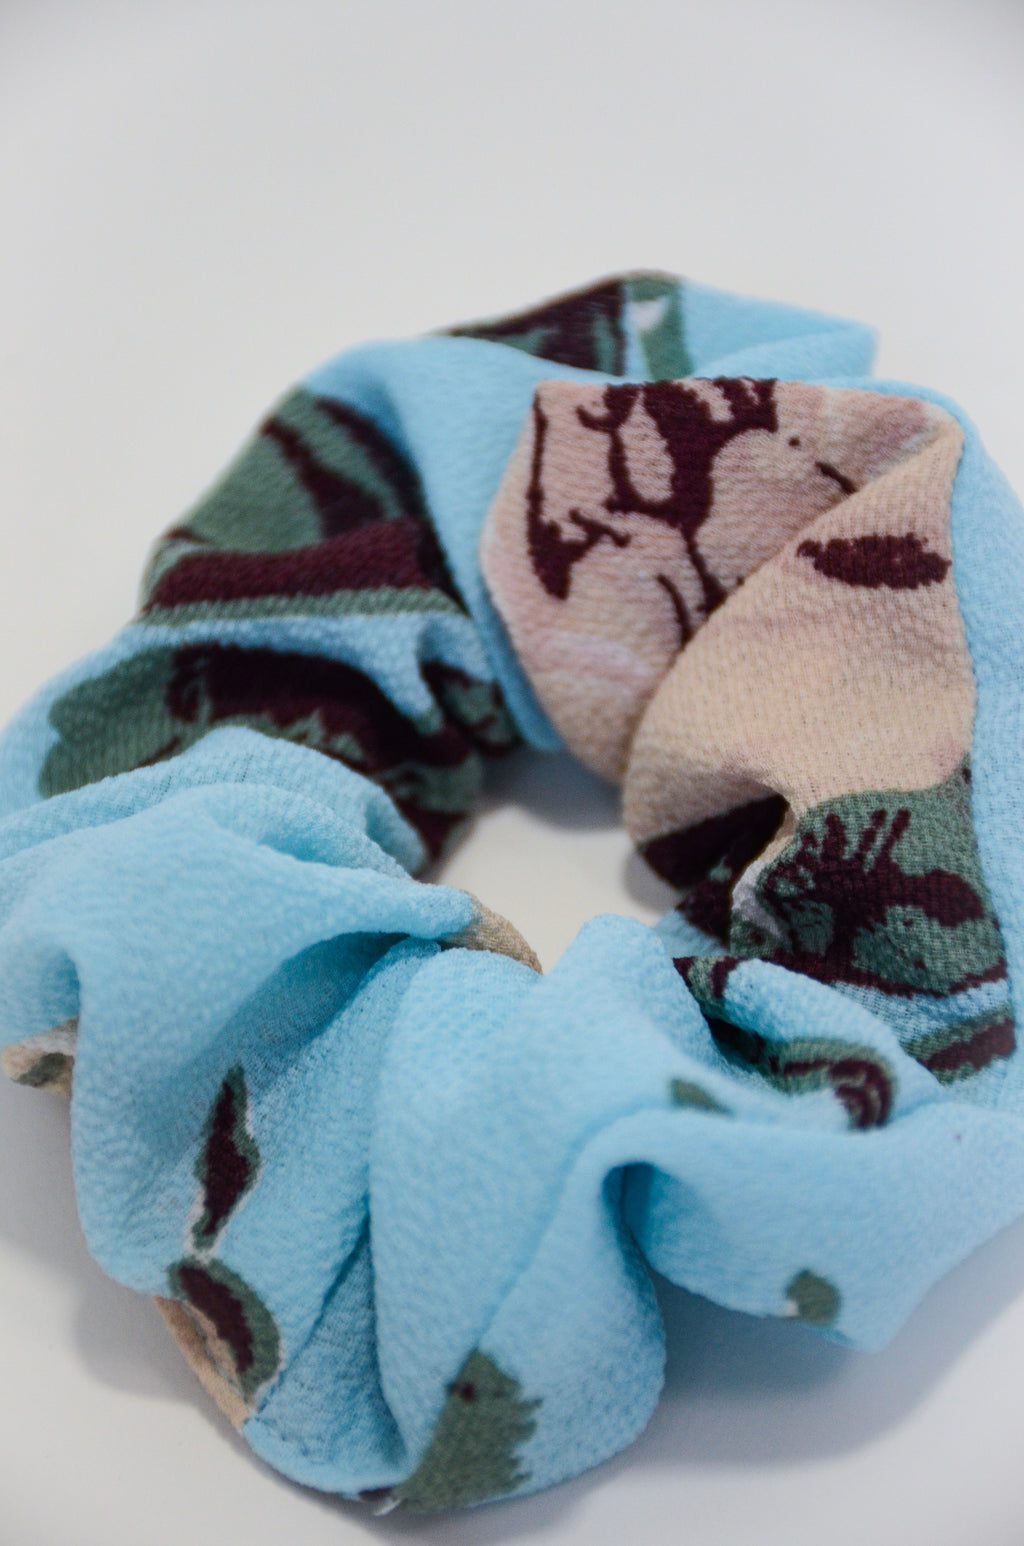 The Watercolor Scrunchie in Light Blue